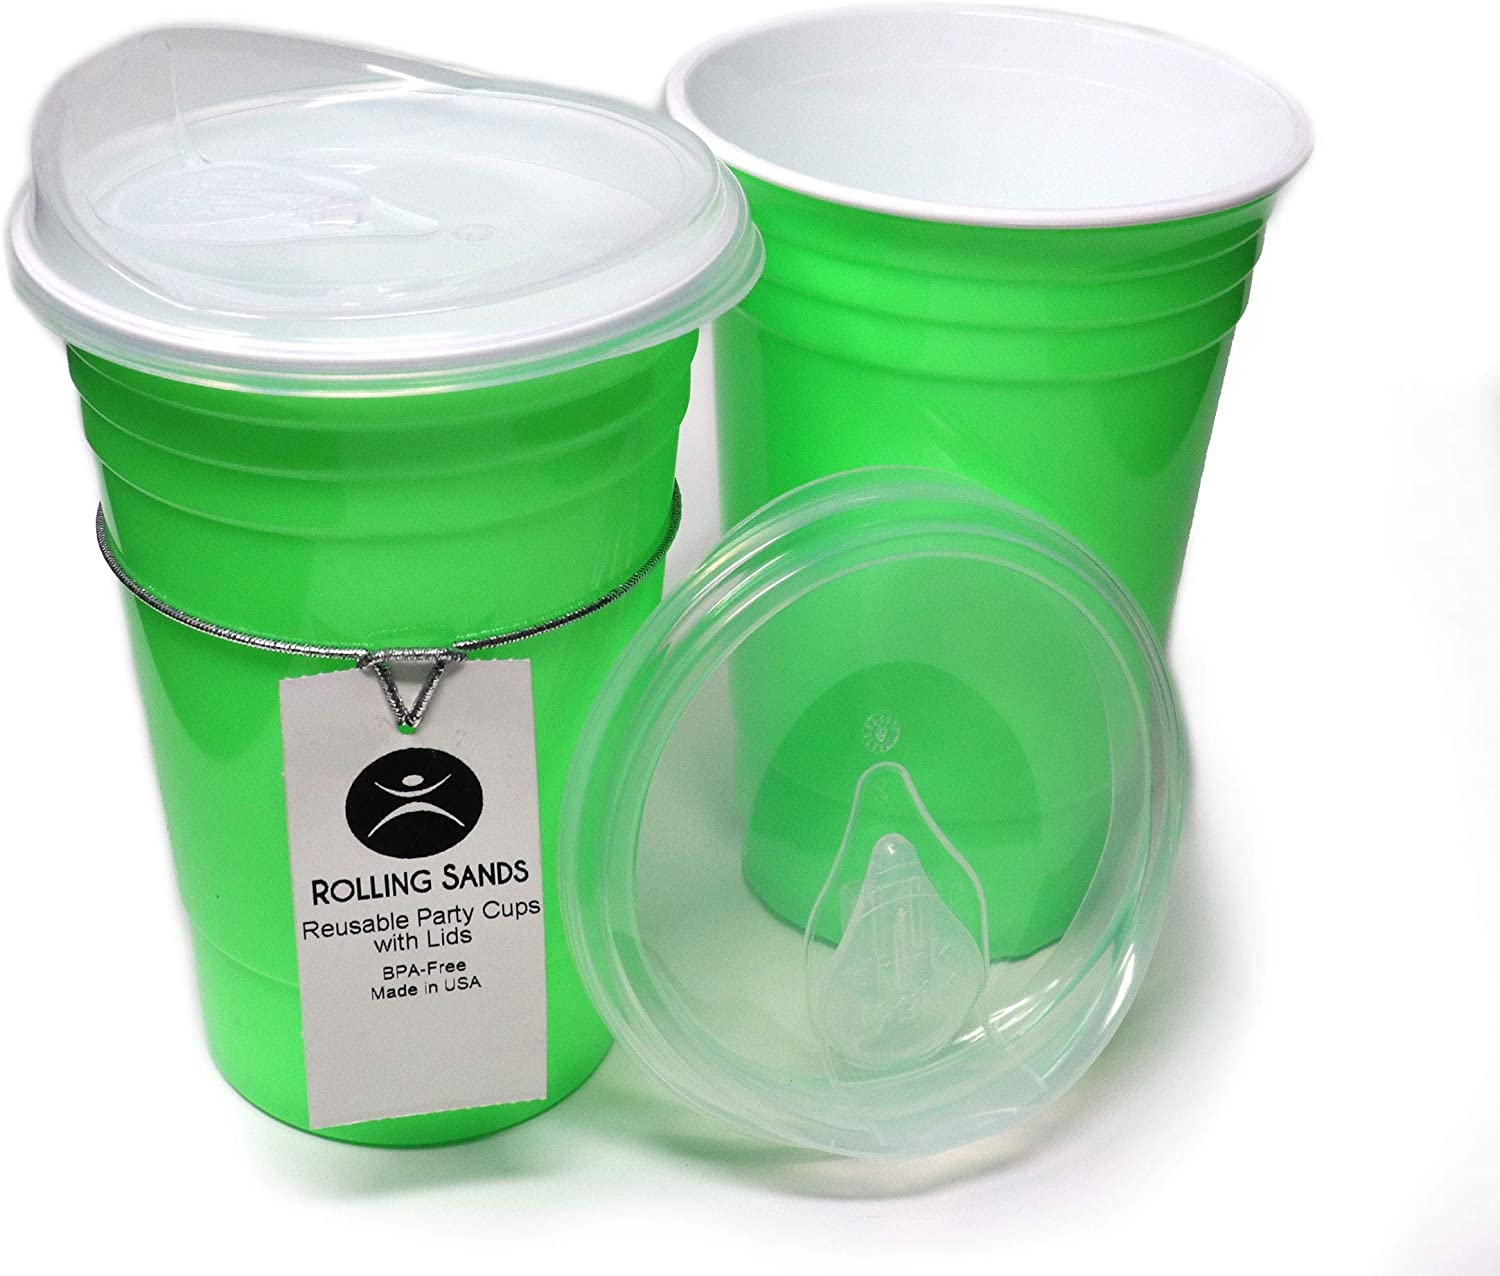 Rolling Sands Reusable BPA-Free 16 Ounce Neon Green Party Cups with Lids - 2 Pack, Made in USA